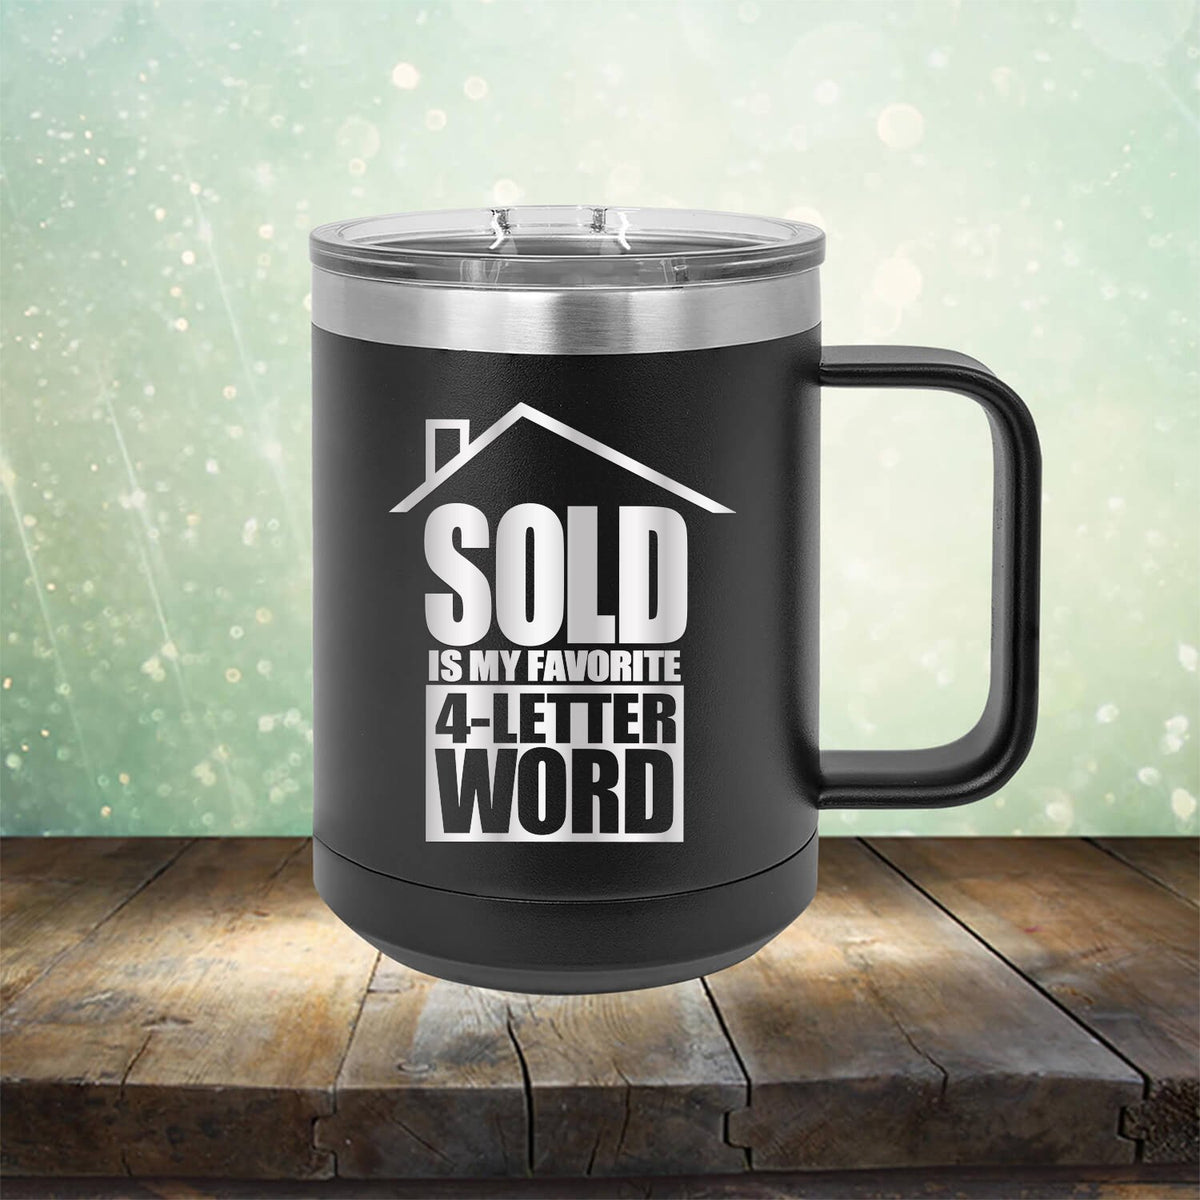 SOLD is My Favorite 4-Letter Word